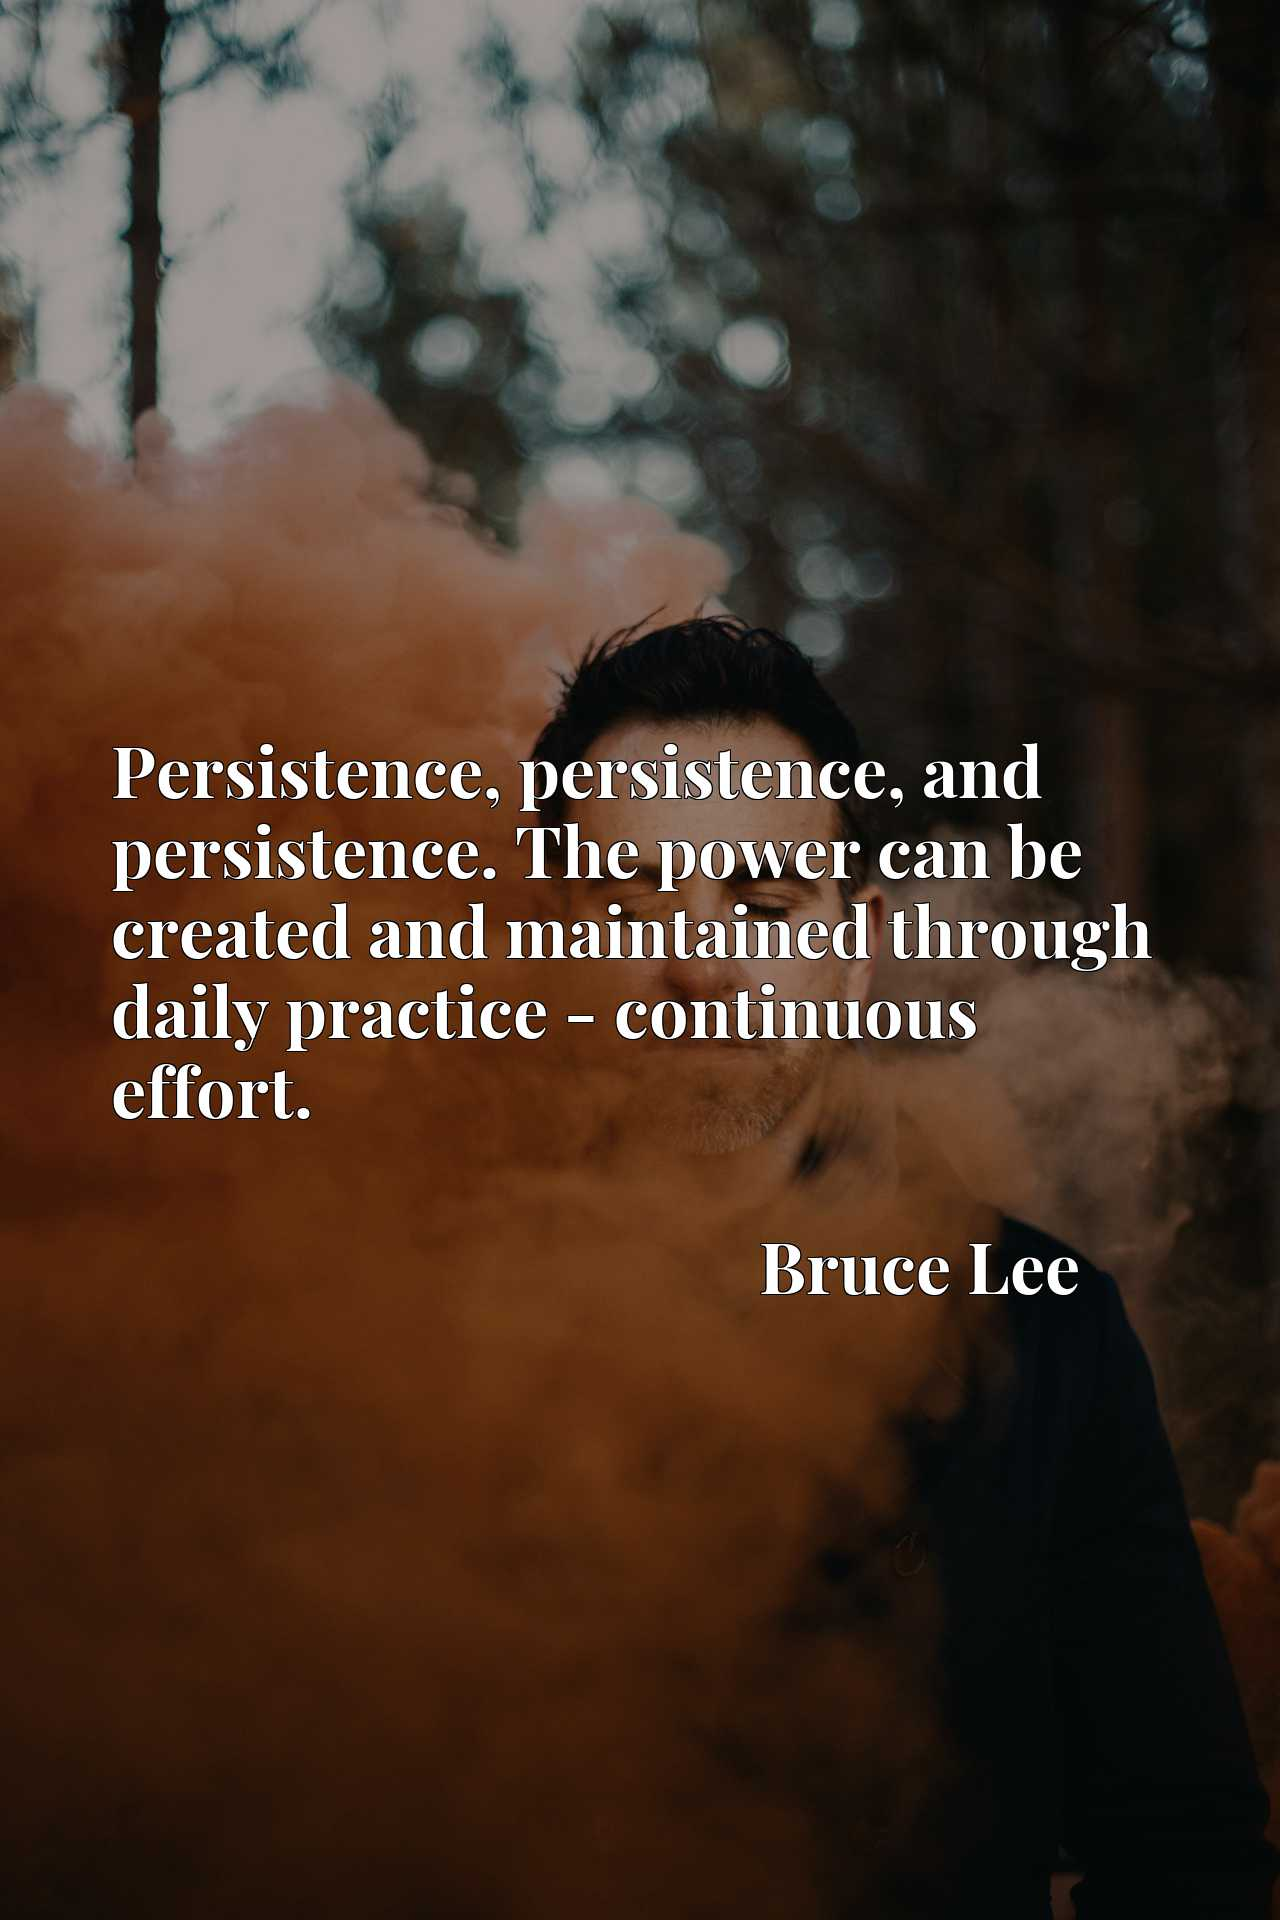 Persistence, persistence, and persistence. The power can be created and maintained through daily practice - continuous effort.